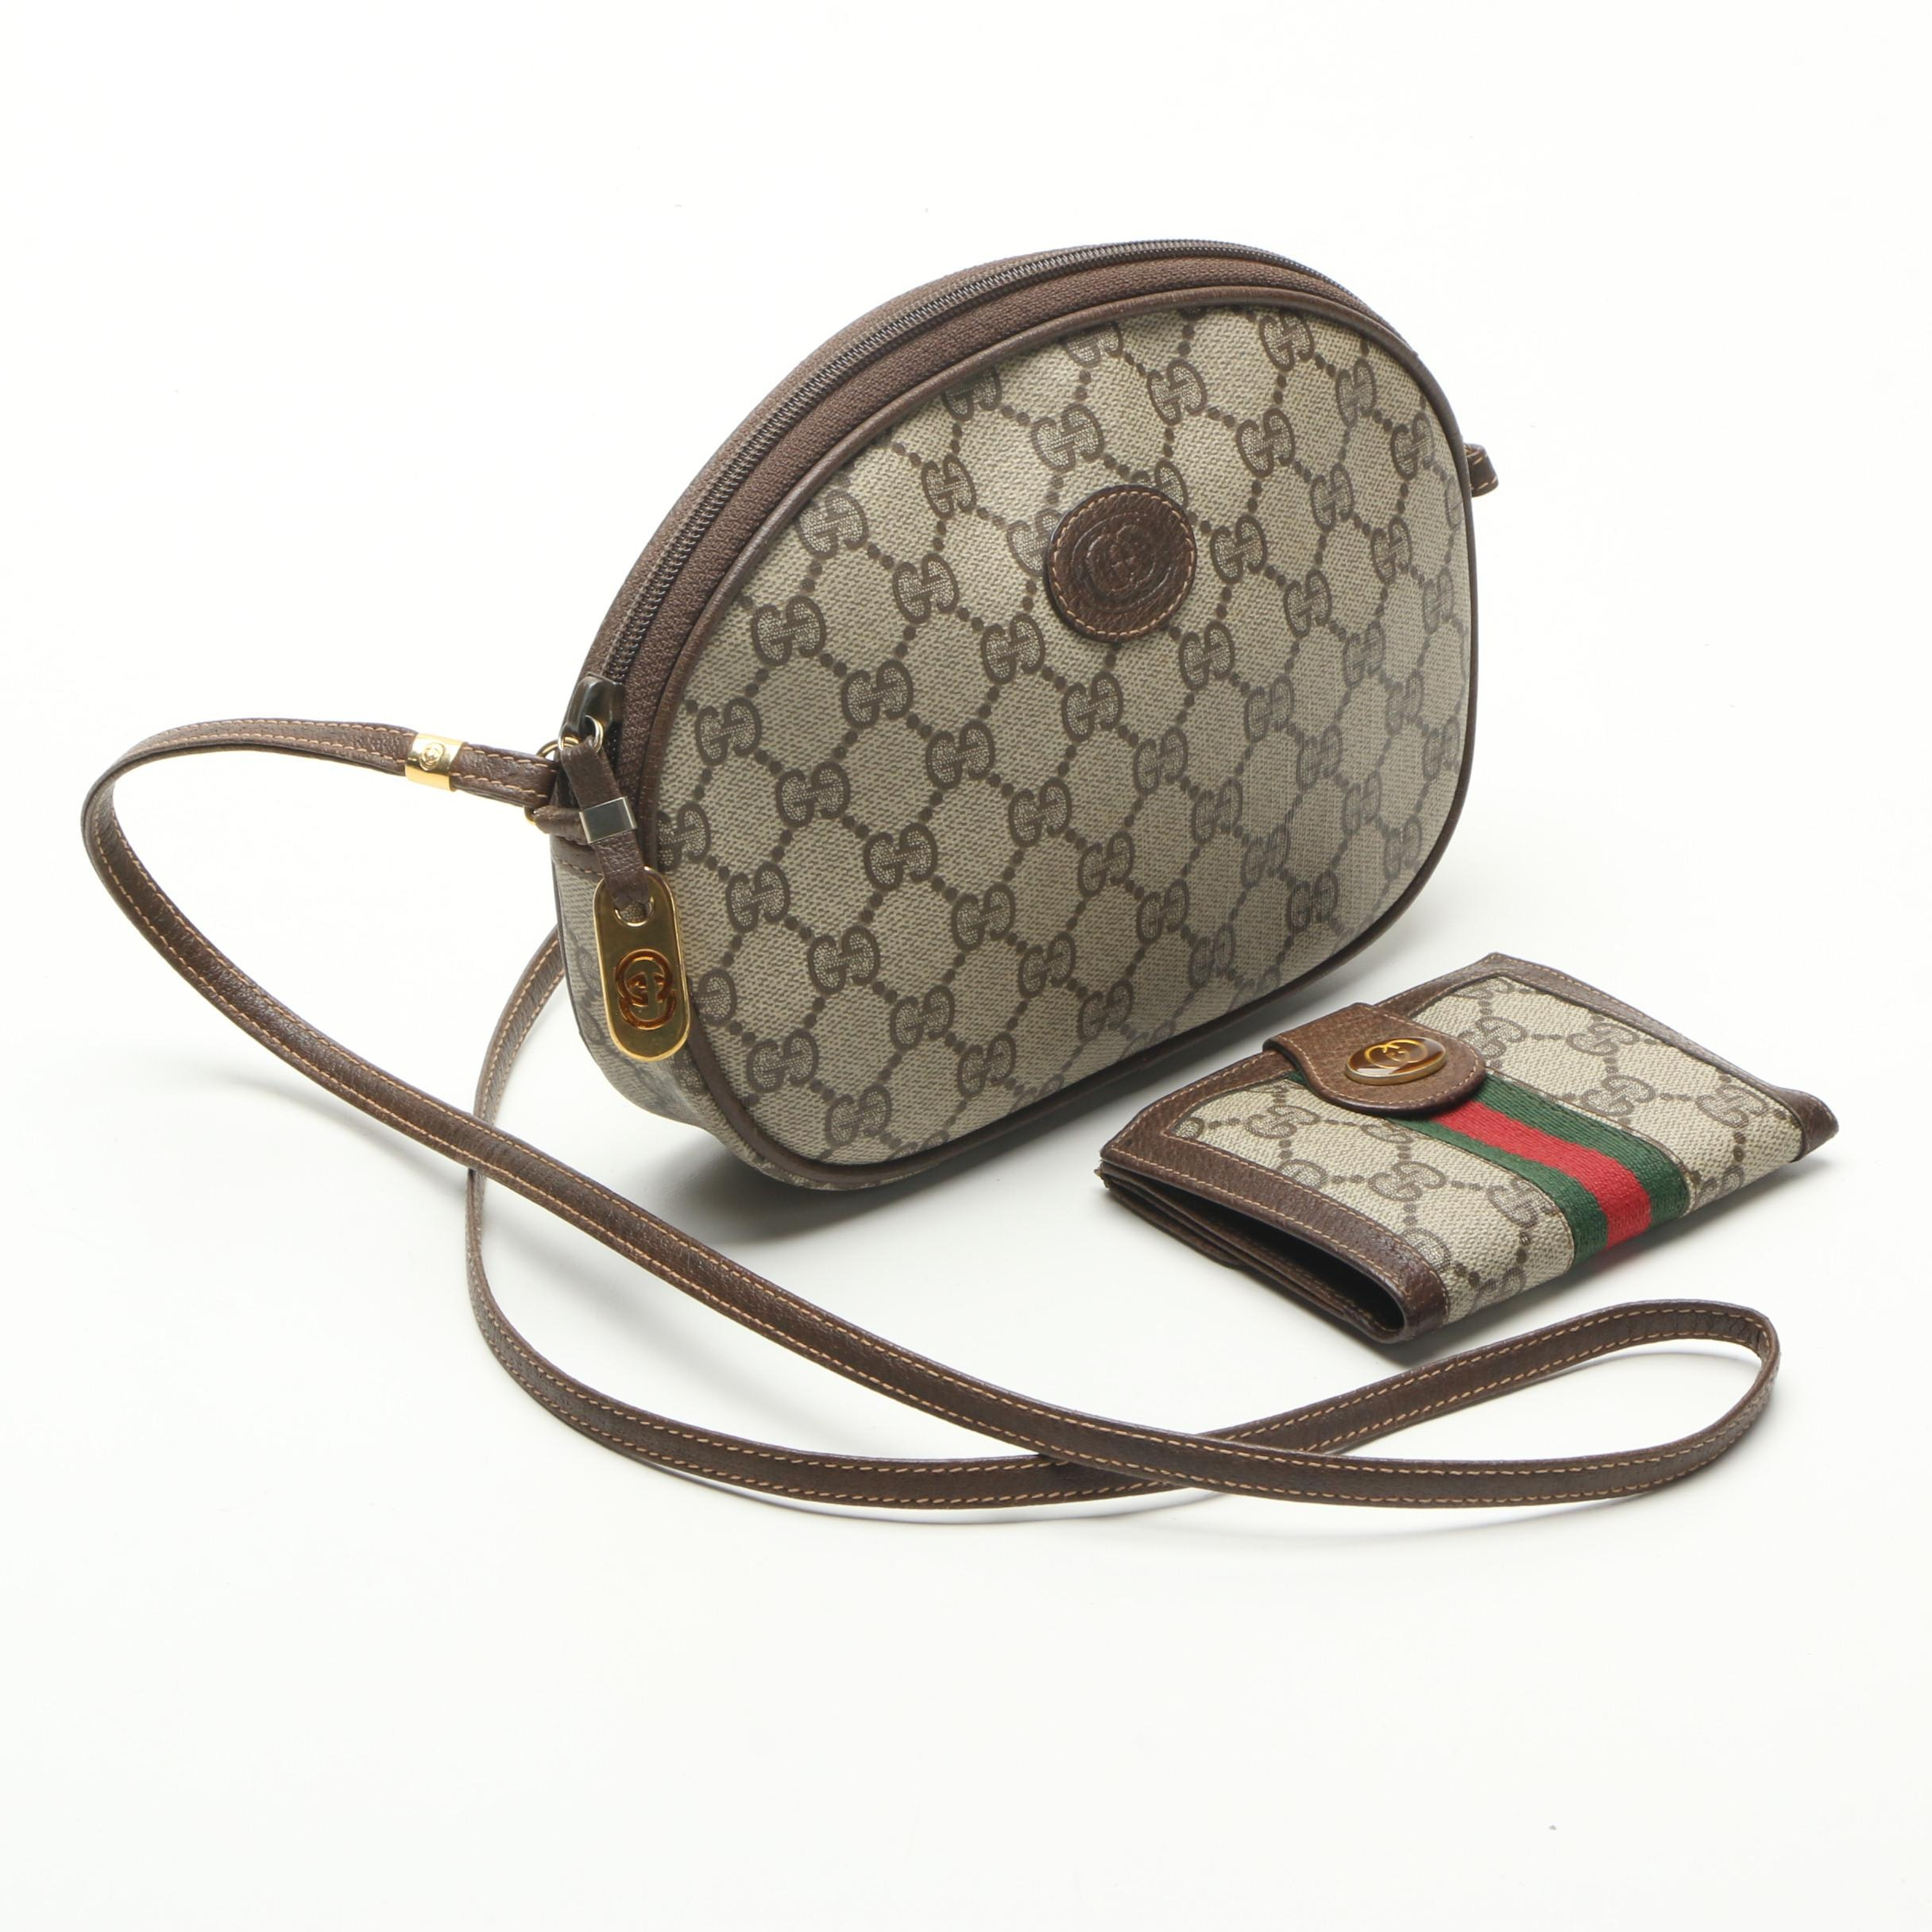 Gucci Coated Canvas Crossbody Bag with Wallet